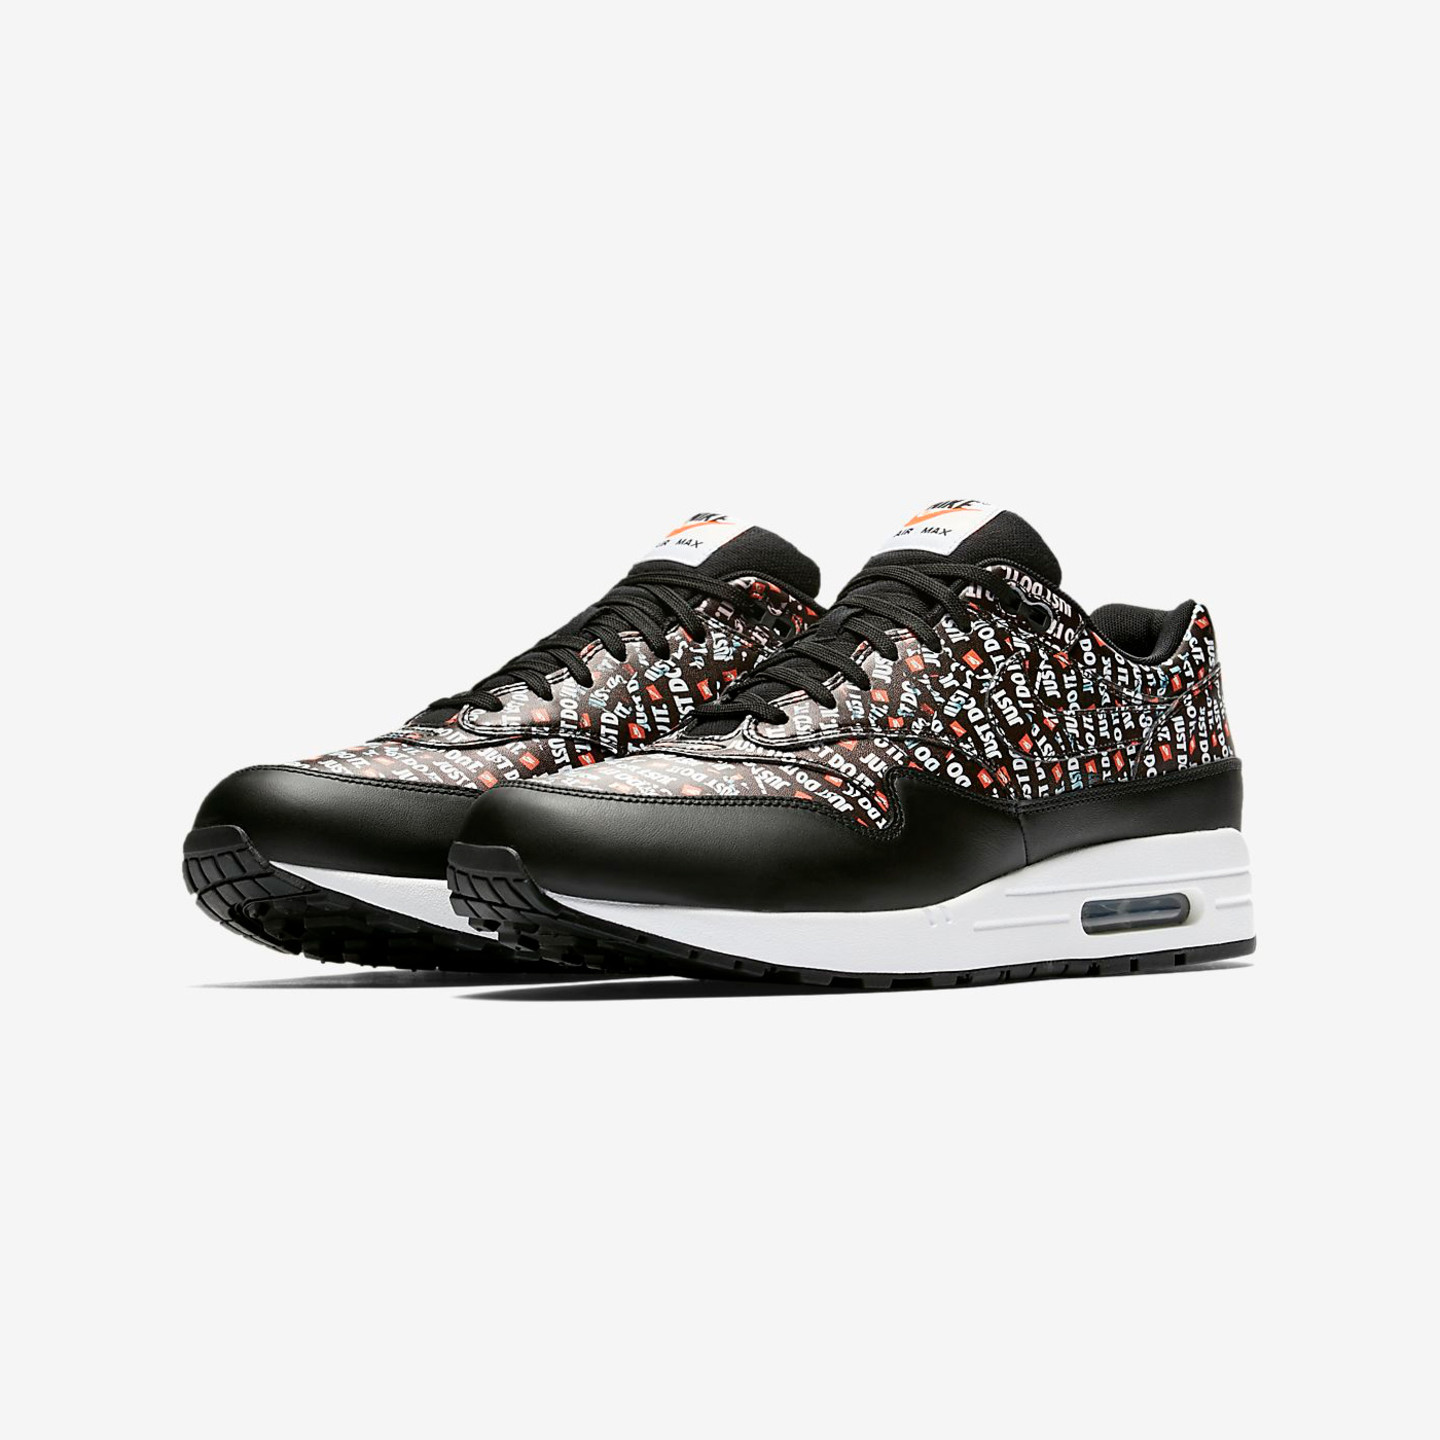 Nike Air Max 1 Premium 'Just Do It' Black / White / Total Orange 875844-009